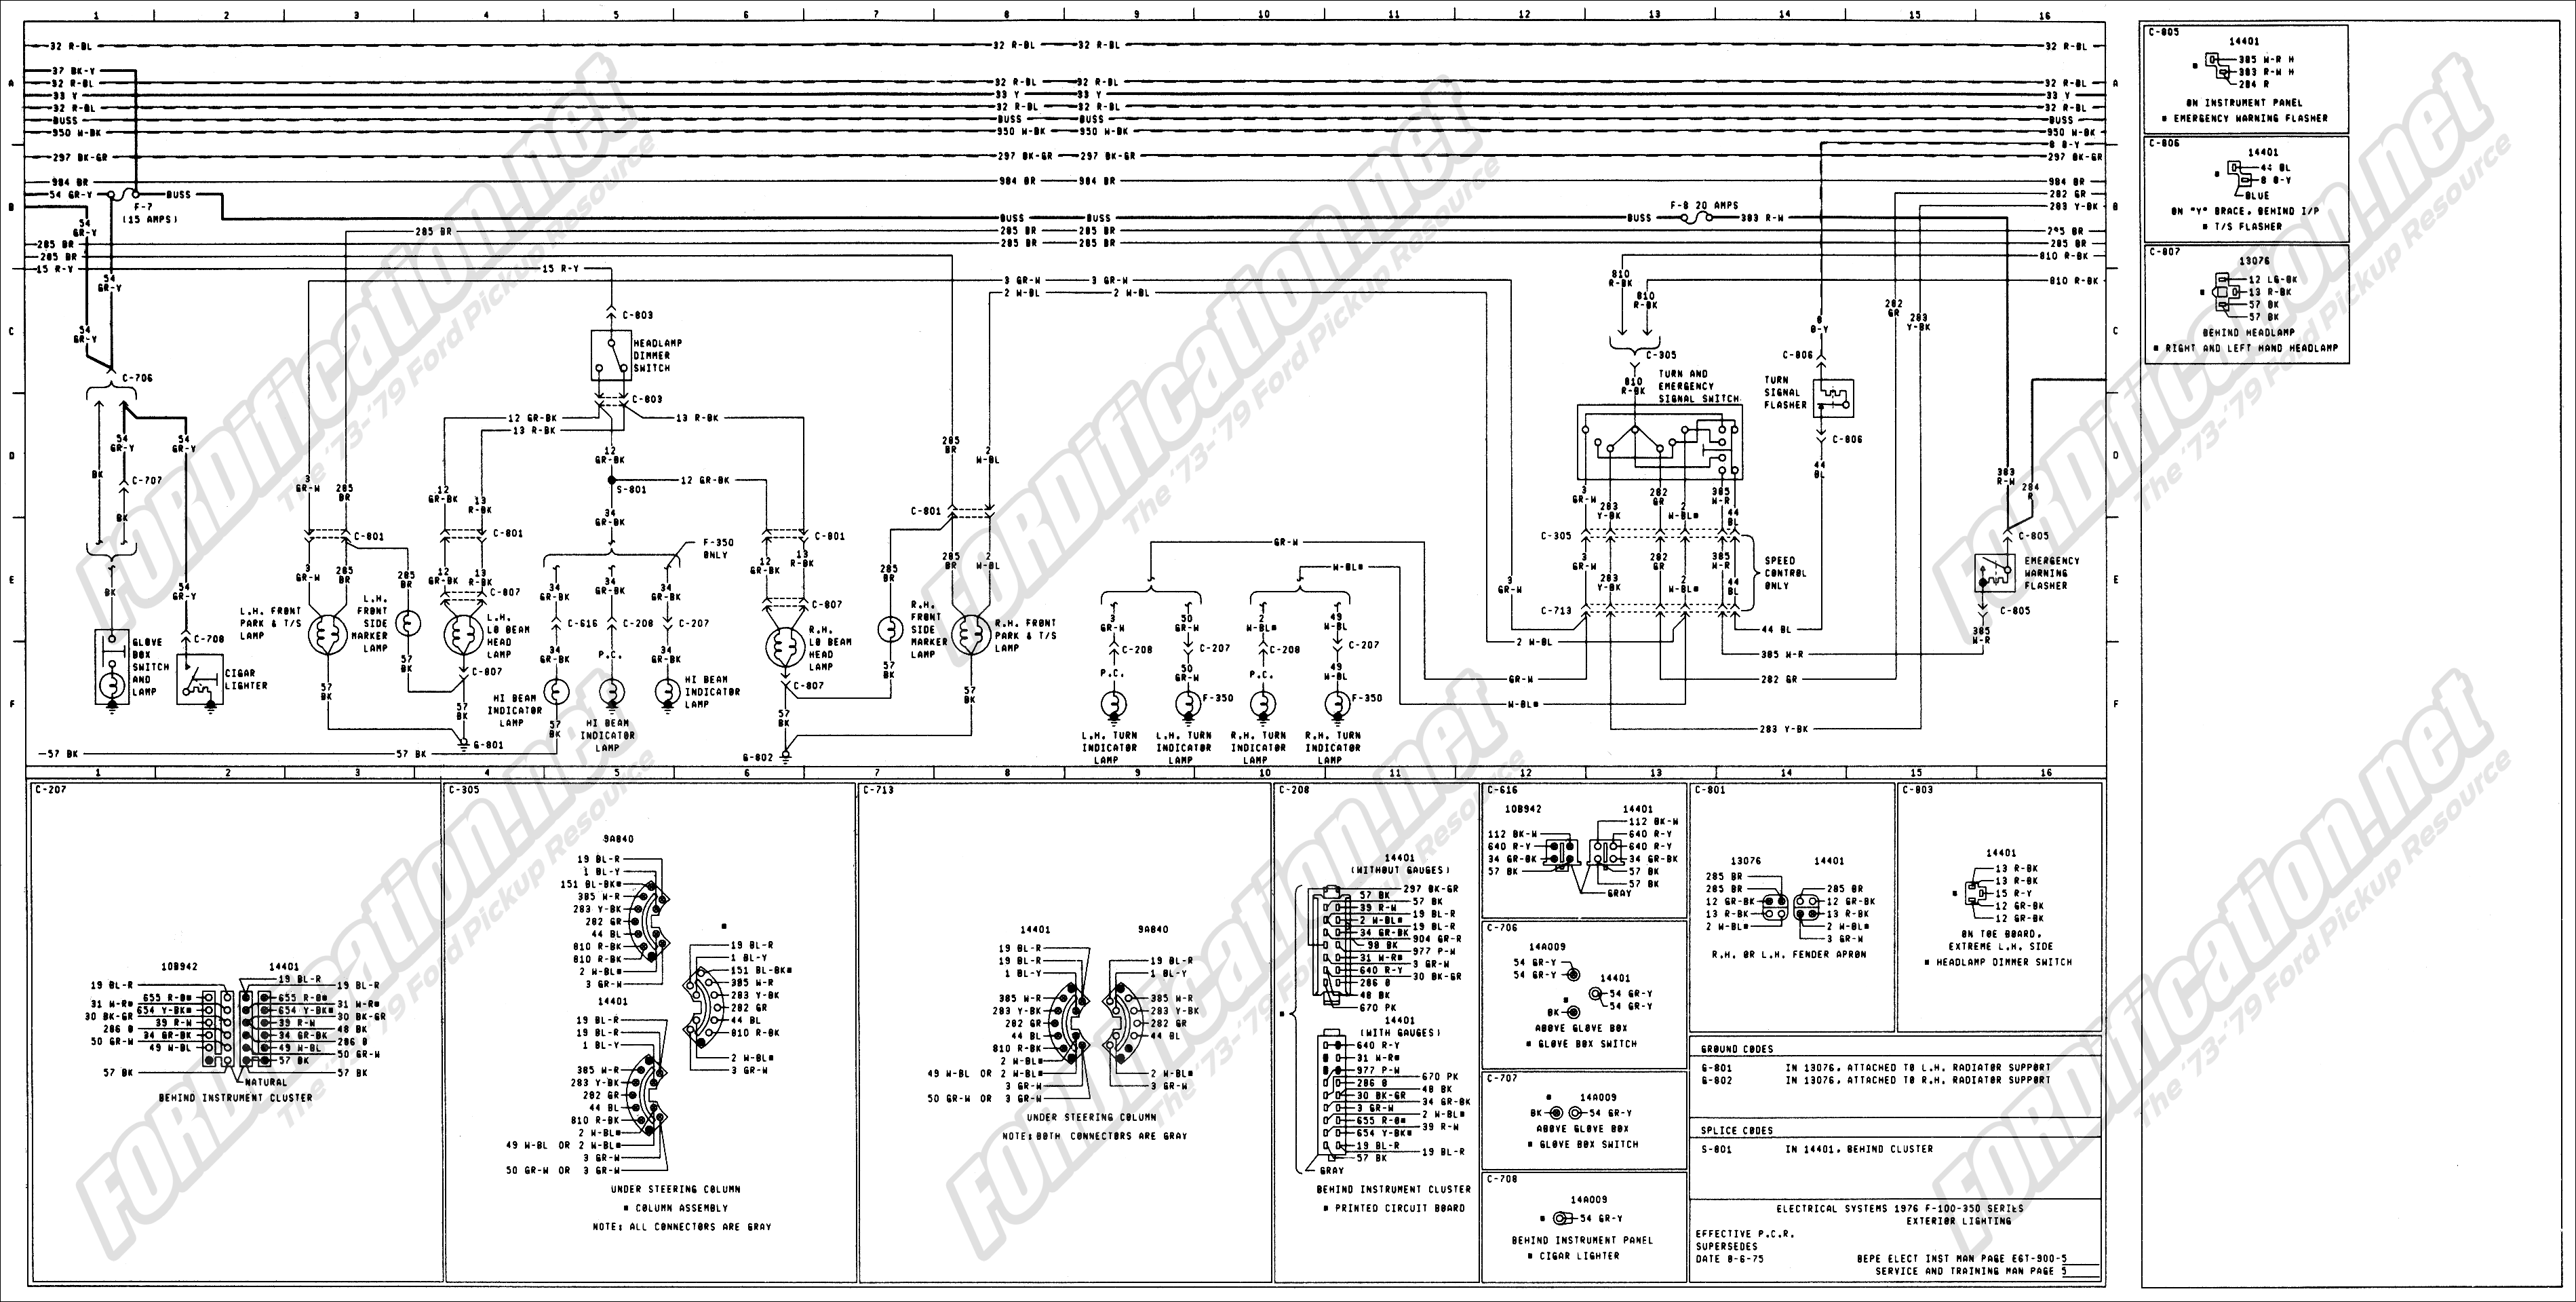 1984 Ford Pickup Instrument Panel Wiring Worksheet And F 150 Truck Alternator Diagrams Images Gallery 78 F100 Diagram